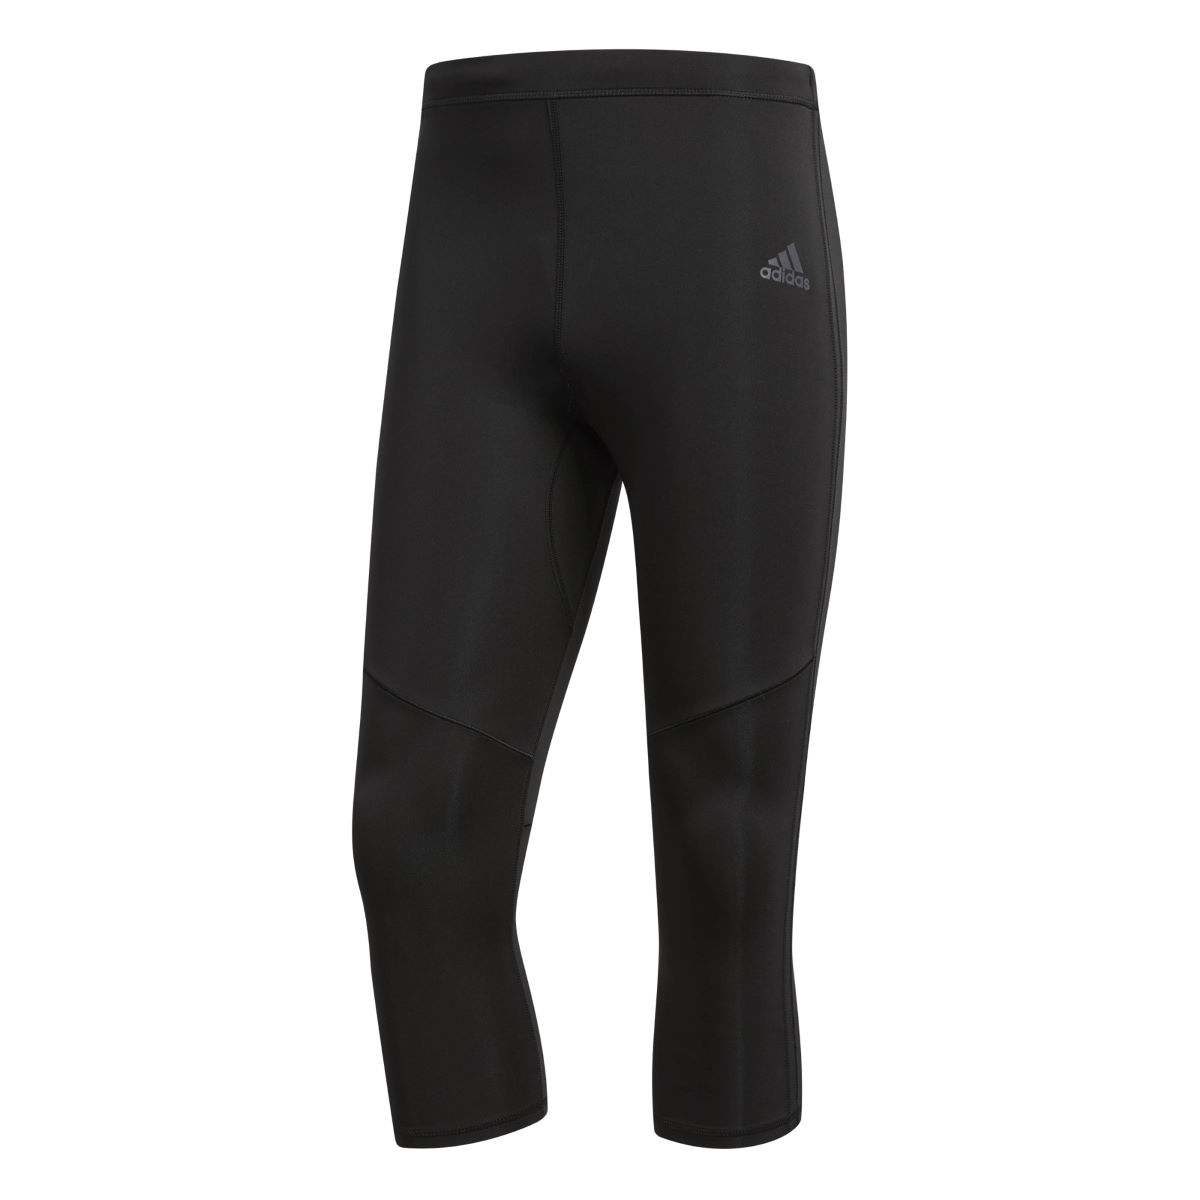 Collant 3/4 adidas Response - Extra Large BLACK/BLACK Collants